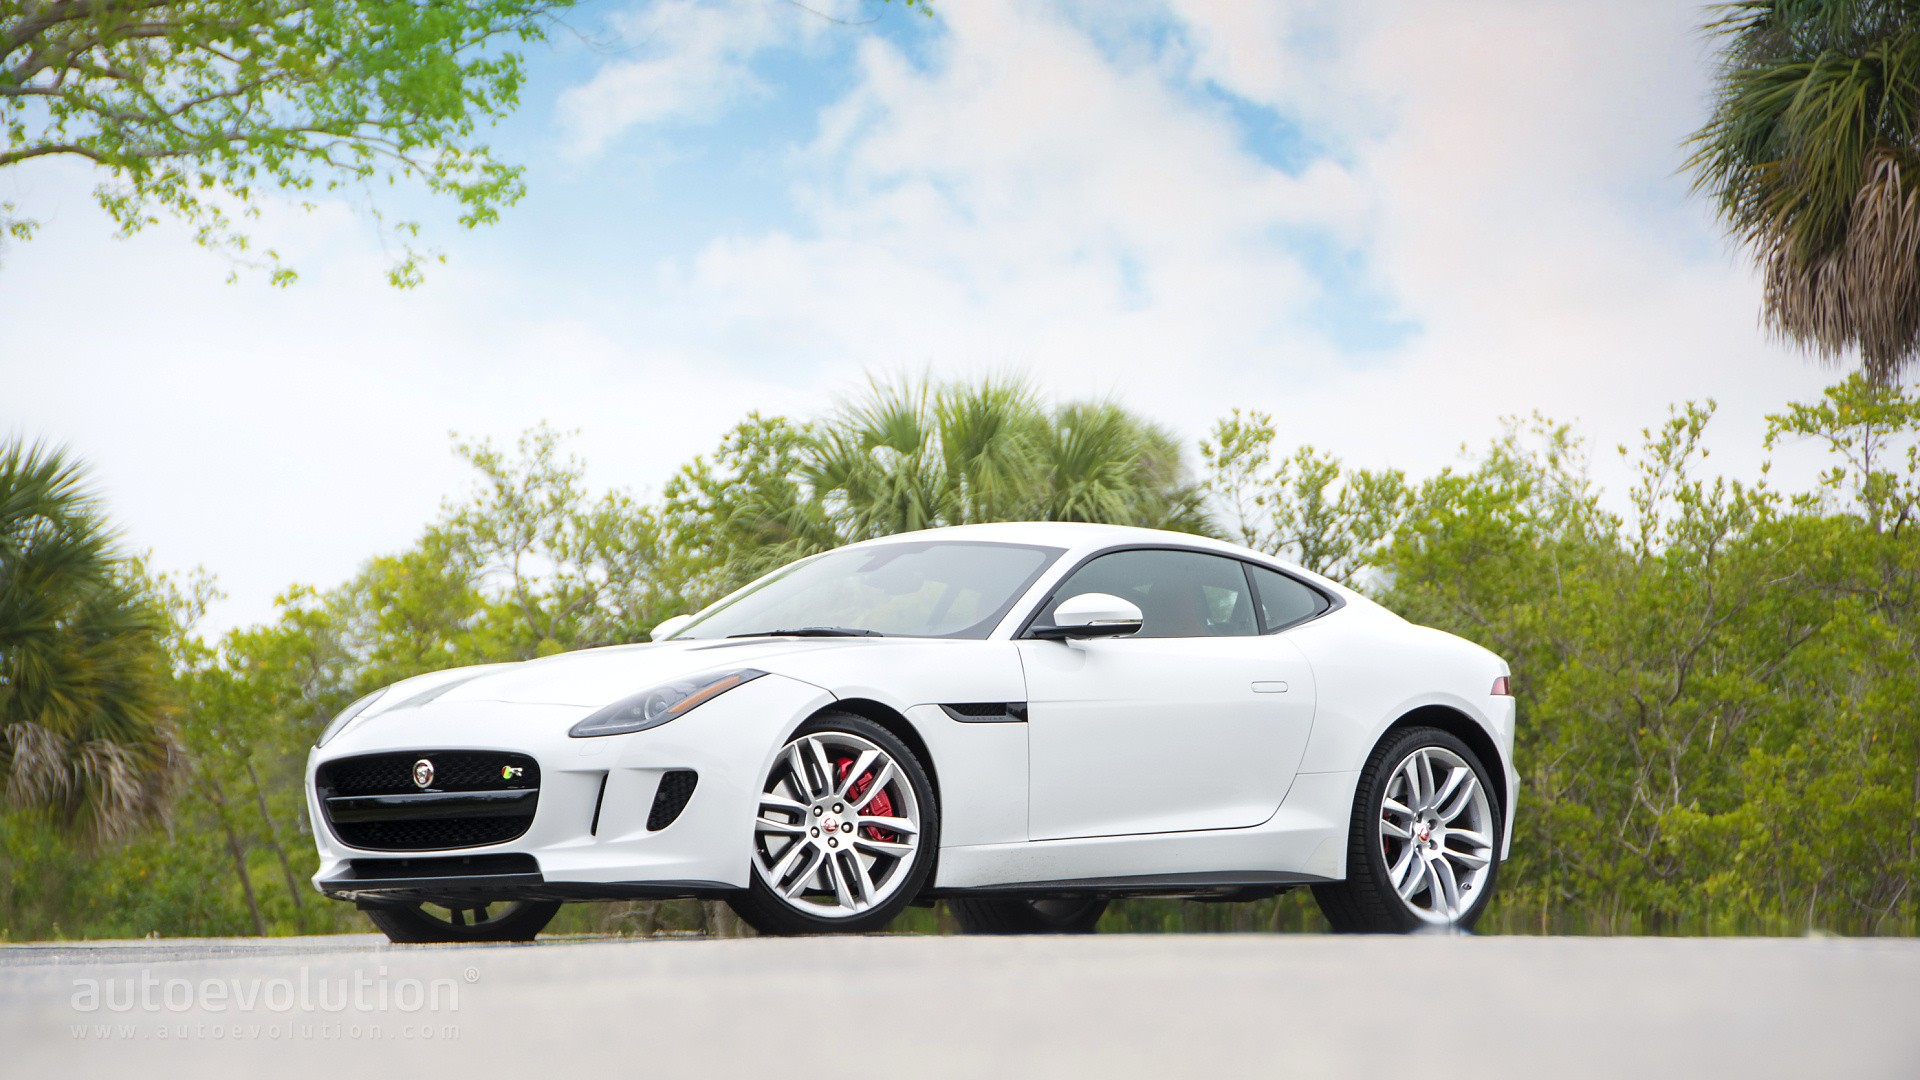 2015 jaguar f type r coupe review autoevolution. Cars Review. Best American Auto & Cars Review